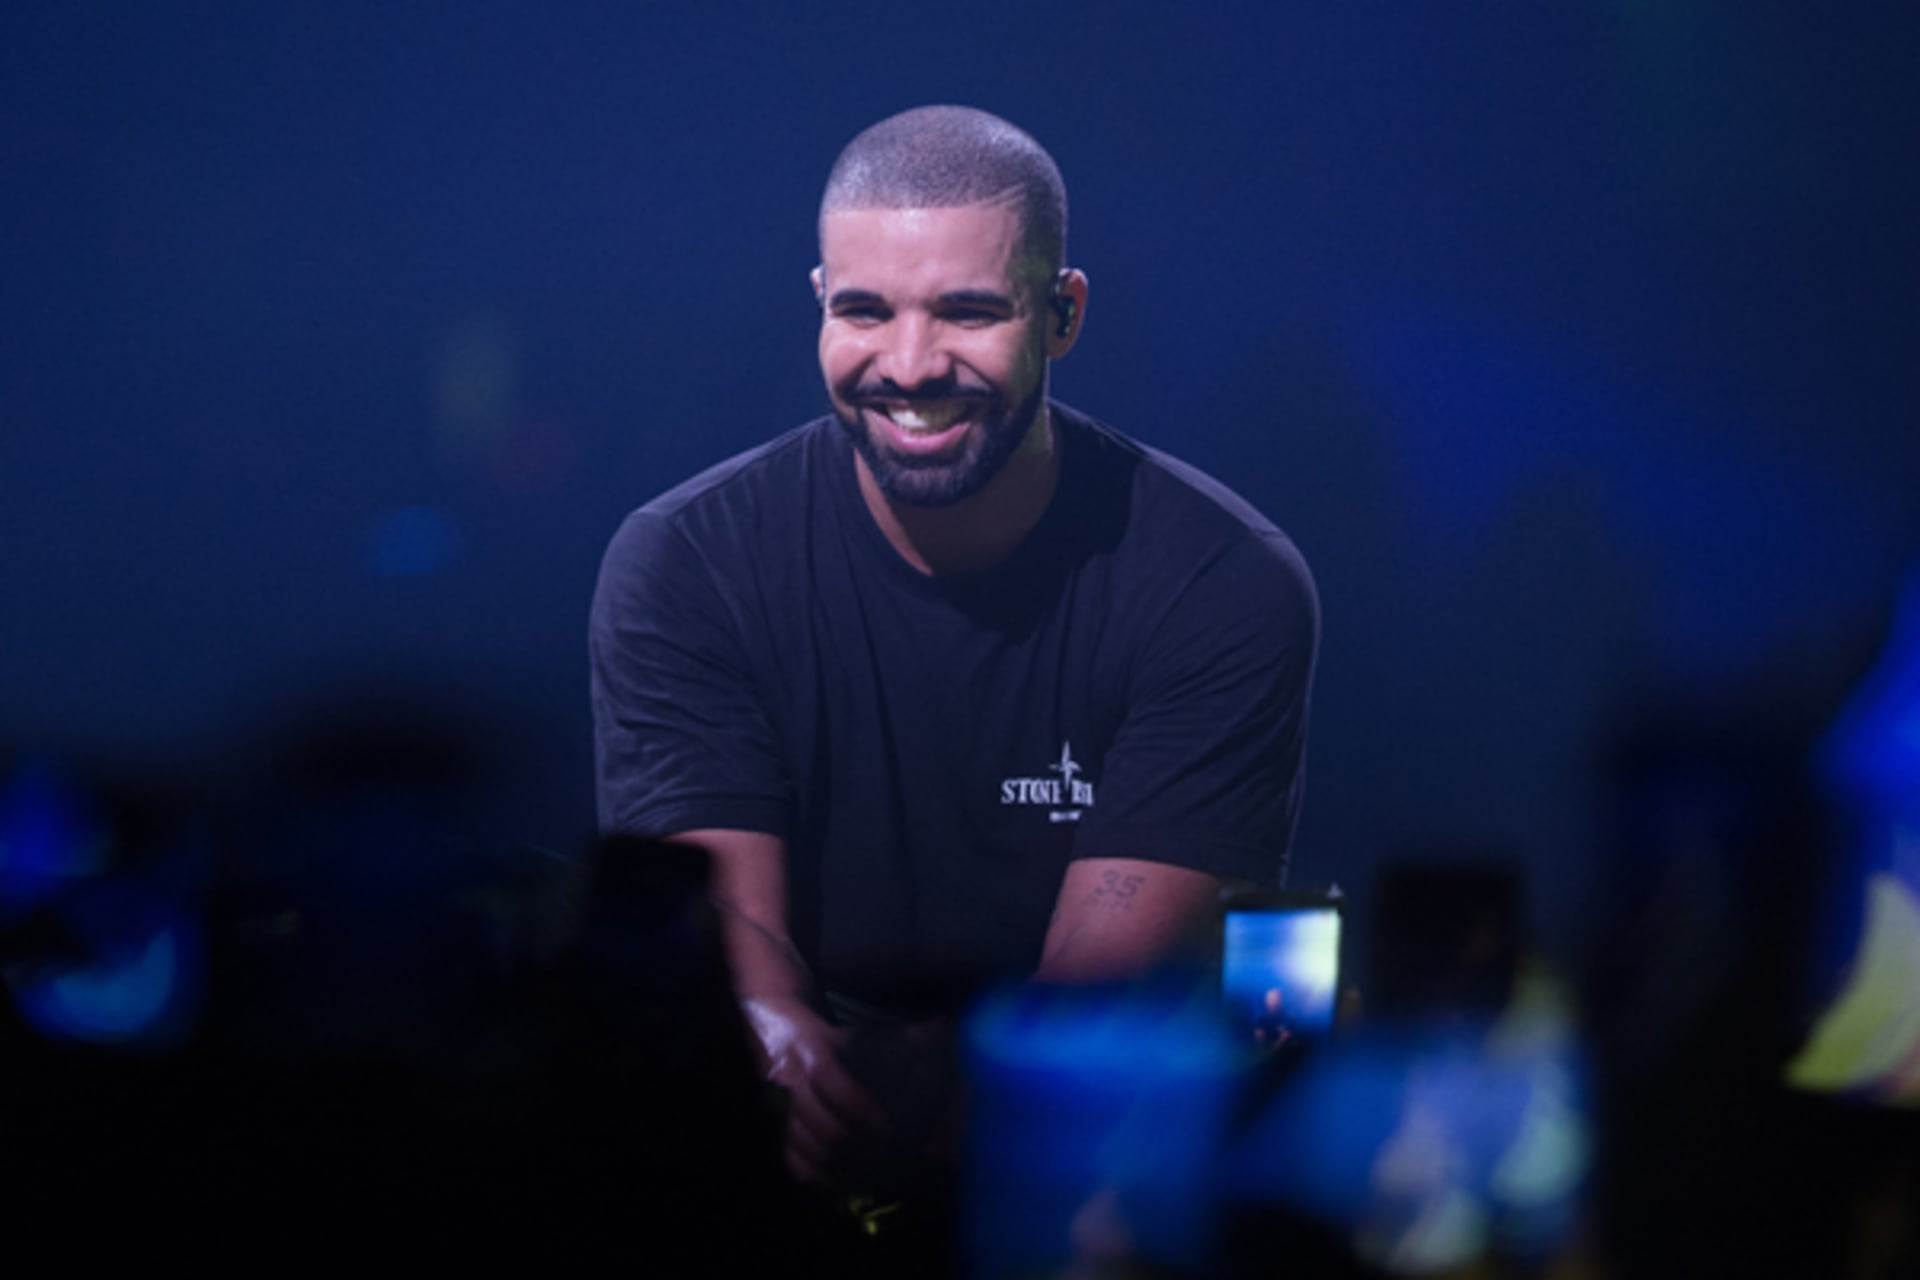 Video Surfaces of Drake Groping 17-Year-Old Girl During Concert